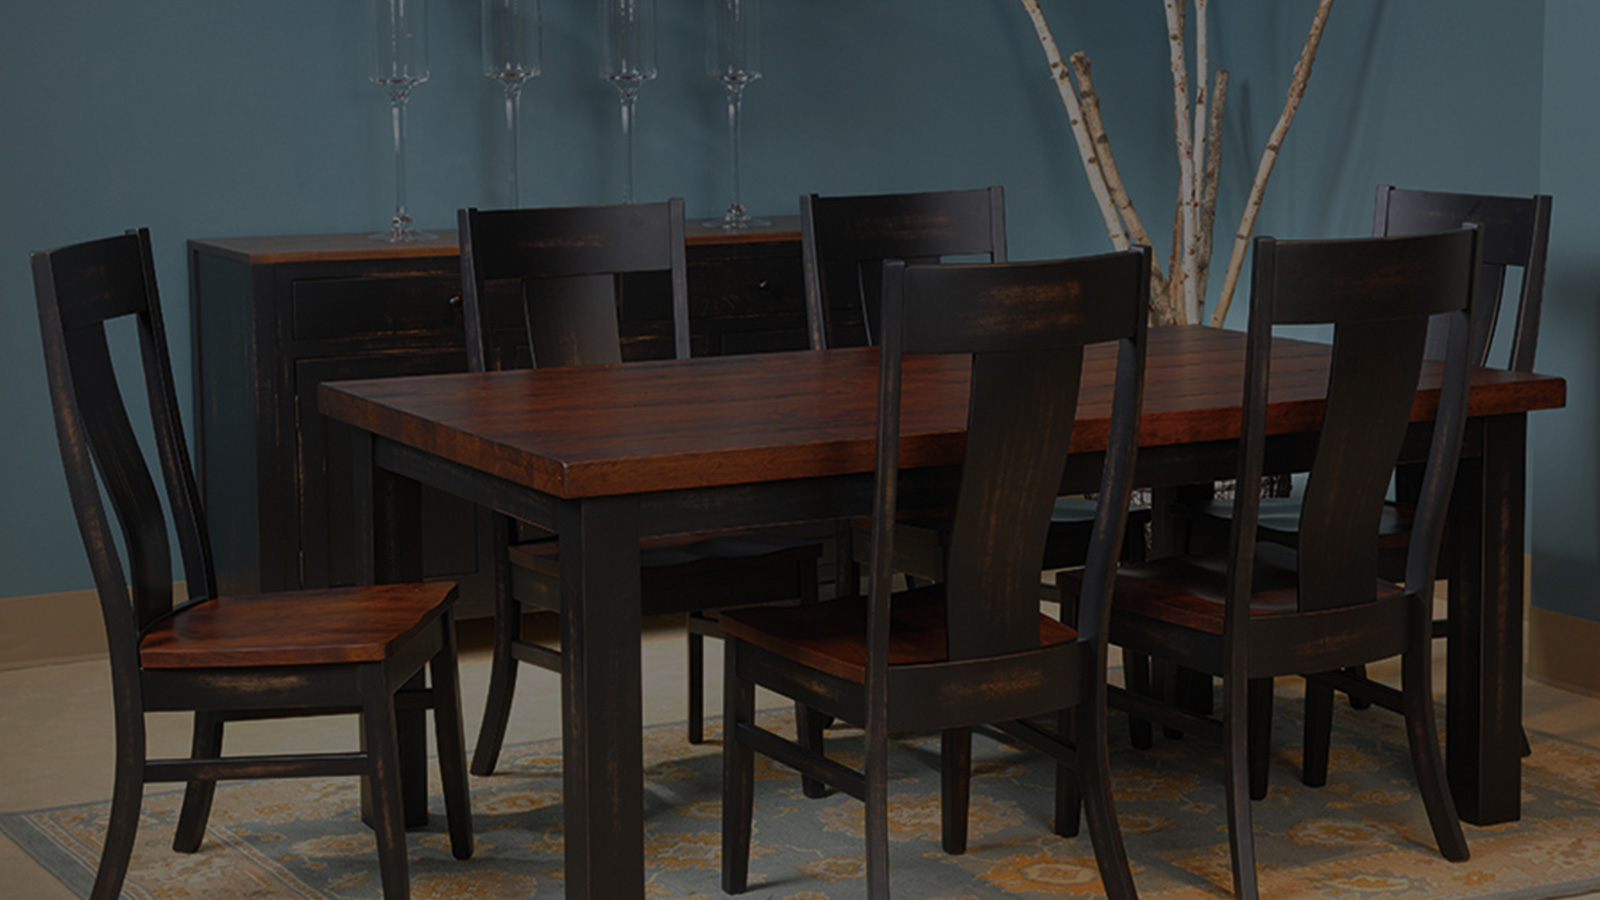 Black & dark wood dining table